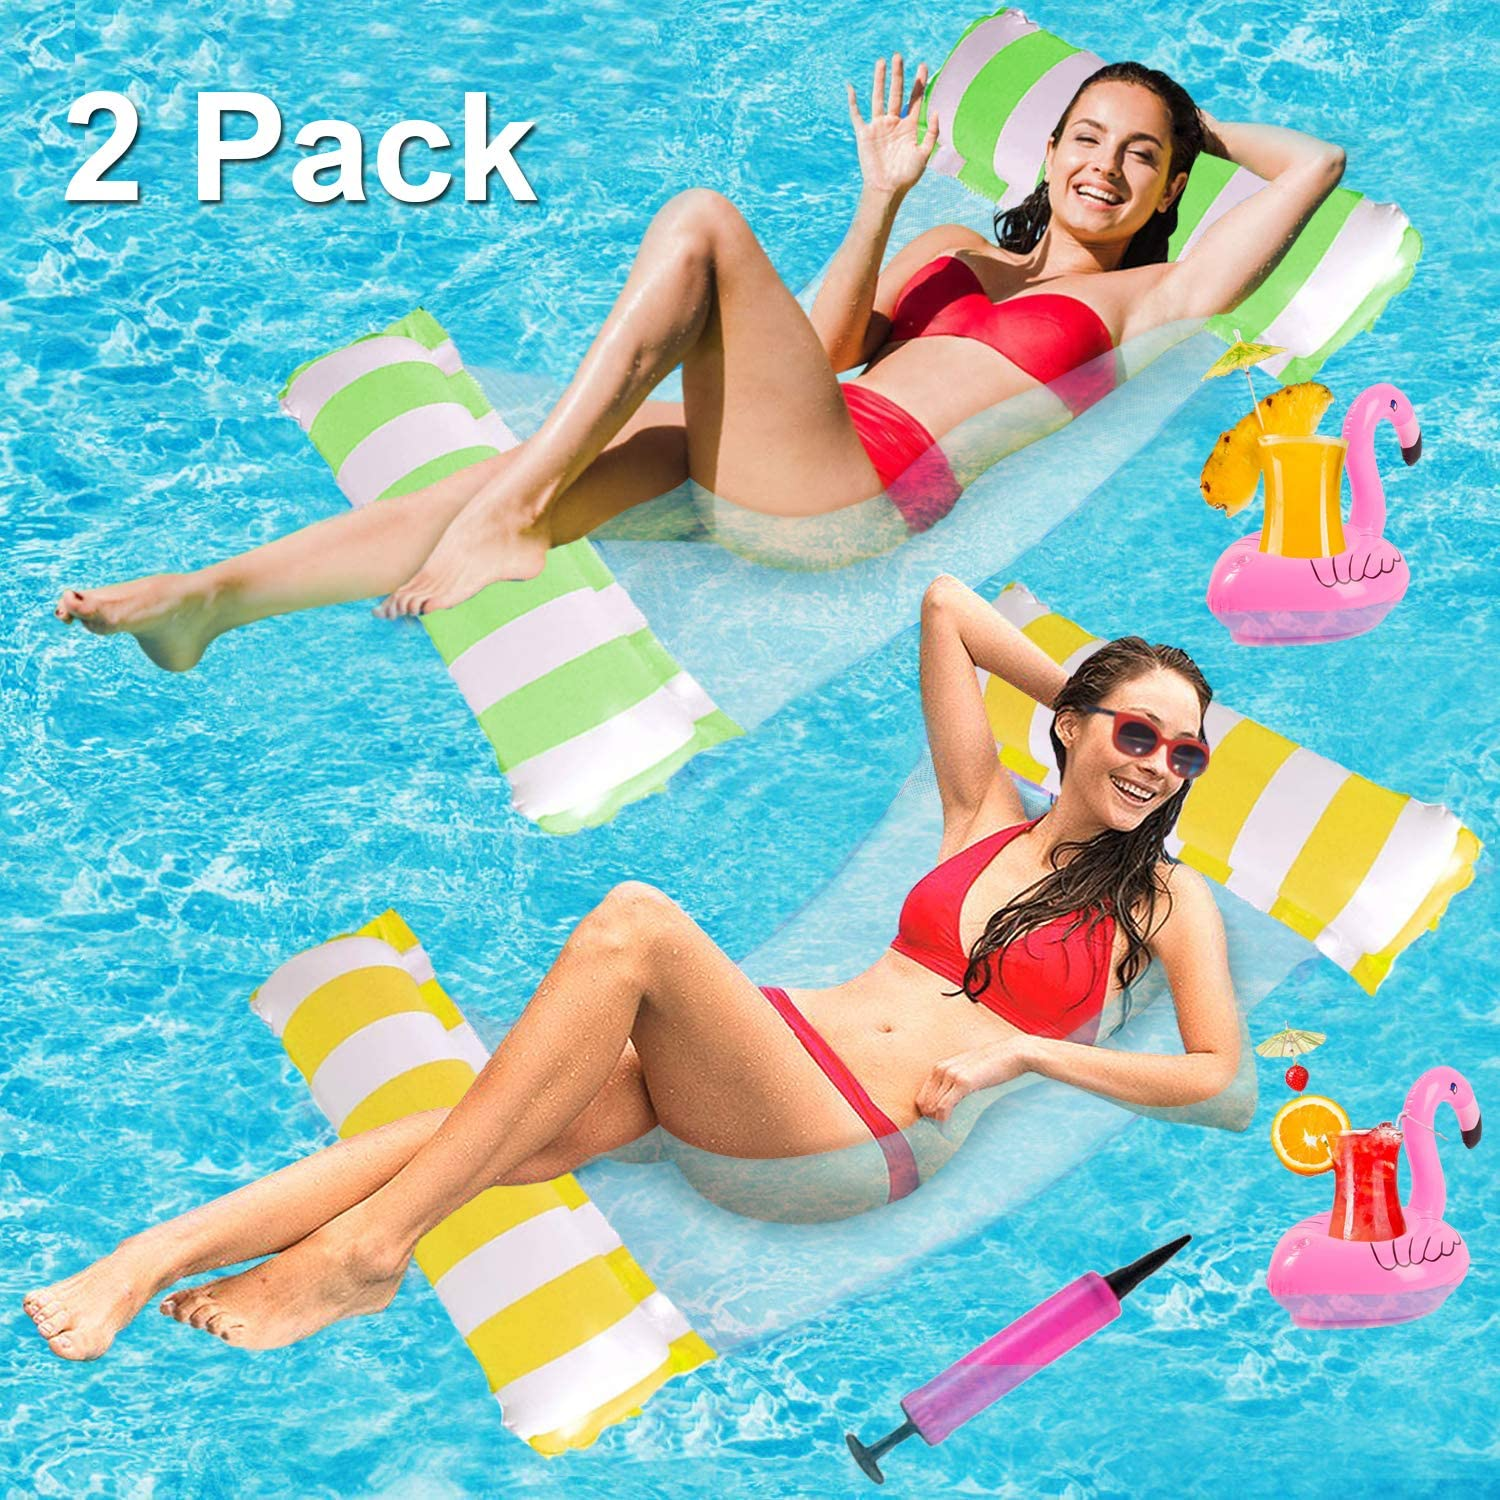 Inflatable Portable Pool Floats for Adults Floating Hammock for Pool Swimming with Air Pump and 2 Cup Holders Xnuoyo 2 Pcs Water Hammock Float Blue+Yellow